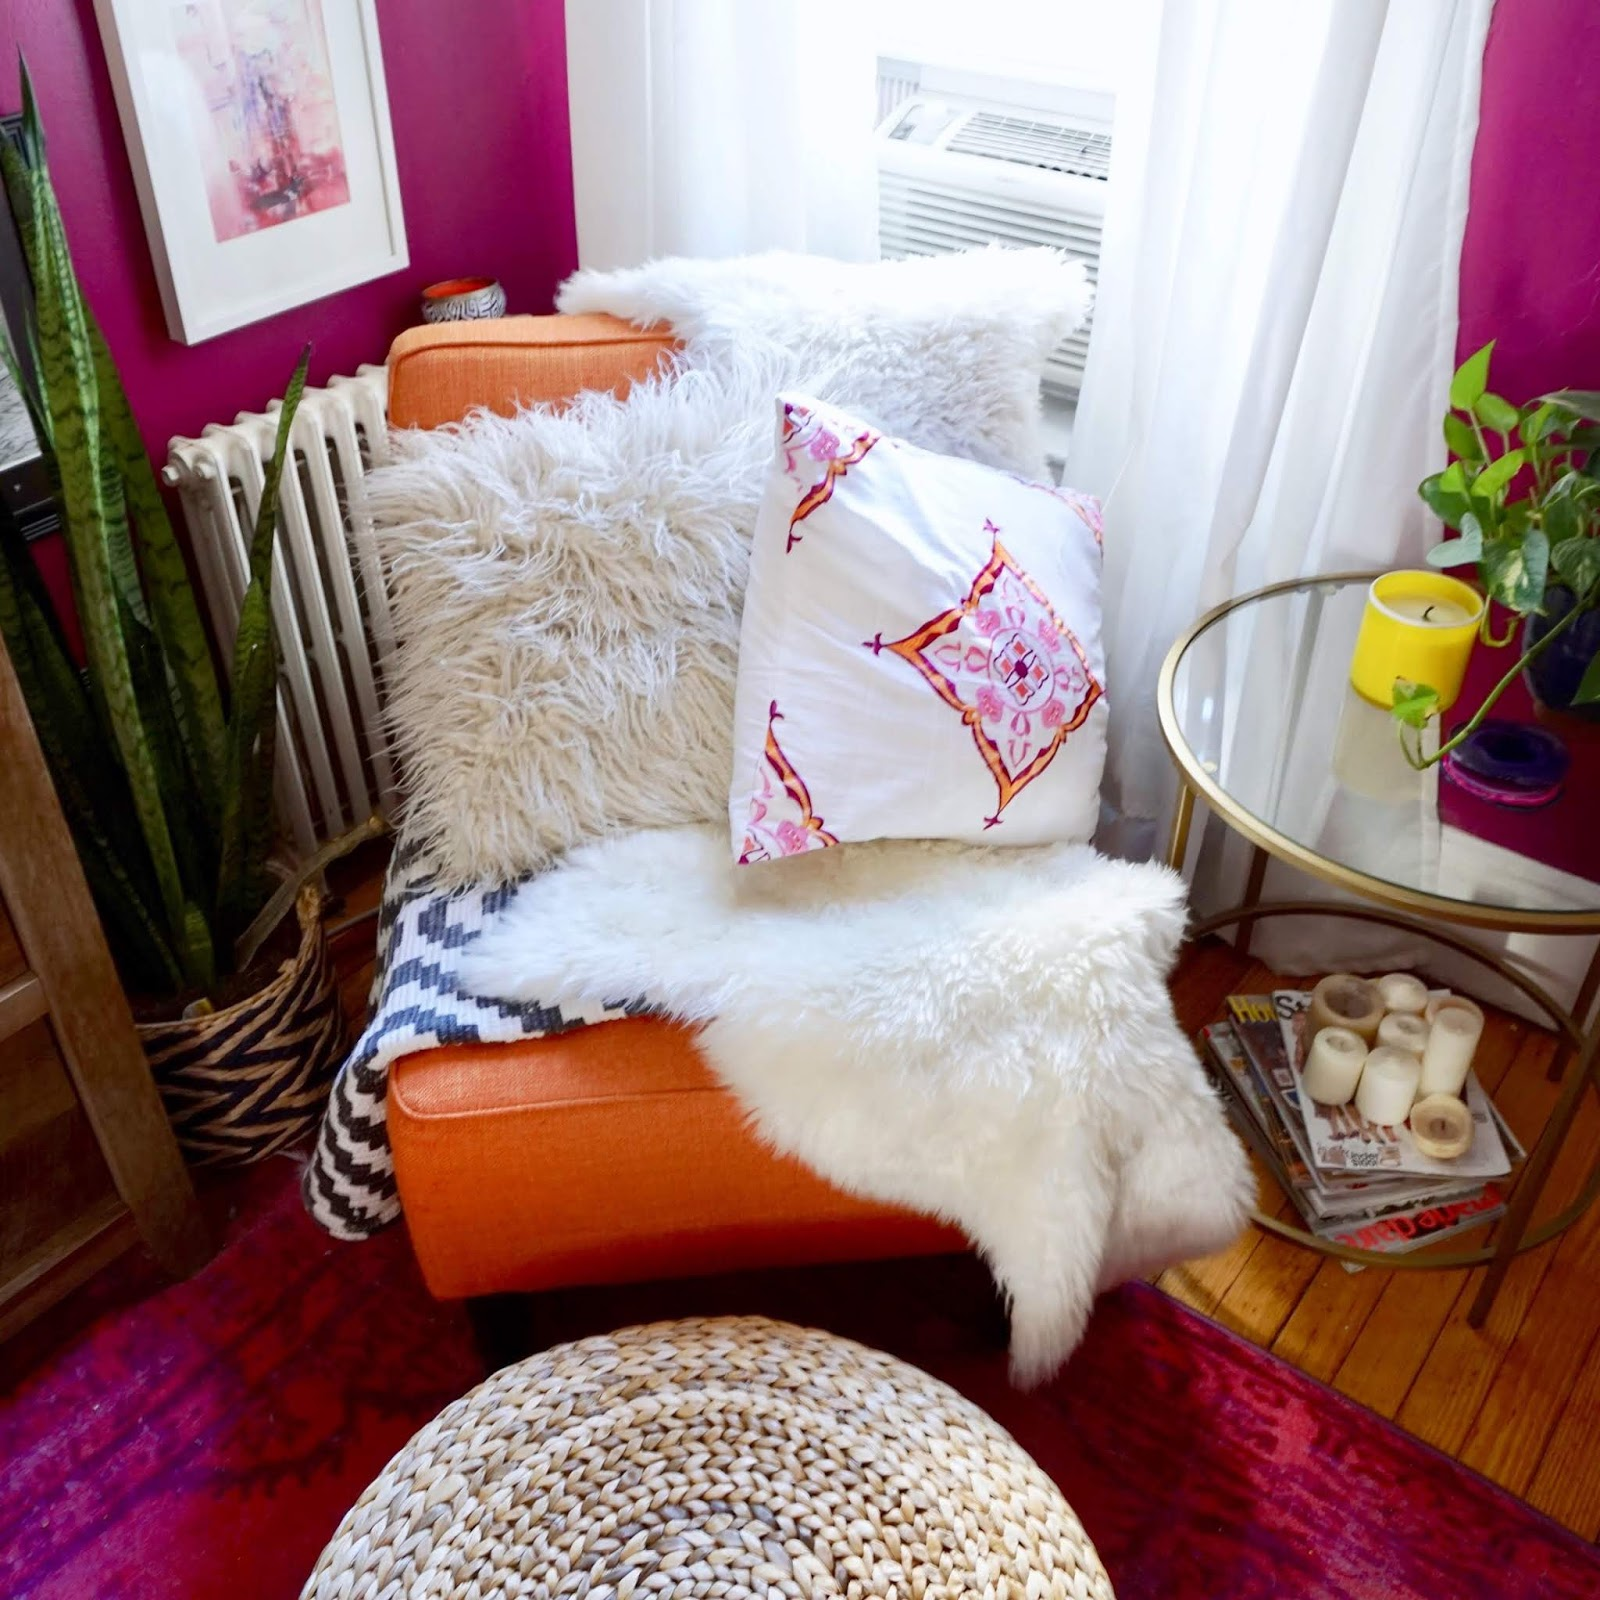 colorful decor, colorful living room decor, boho apartments, small apartment decor, small bohemian apartment, spall space decor, bright decor, pink walls, rattan furniture decor, bright colored walls, watercolor backsplash, purple backsplash, kids bedroom decor, shared nursery decor, two tone walls, wall baskets, boho decor ideas for small places, Ikea hacks, small space storage hacks, New York apartment, colorful New York apartments, colorful decor Inspiration, bohemian decor ideas